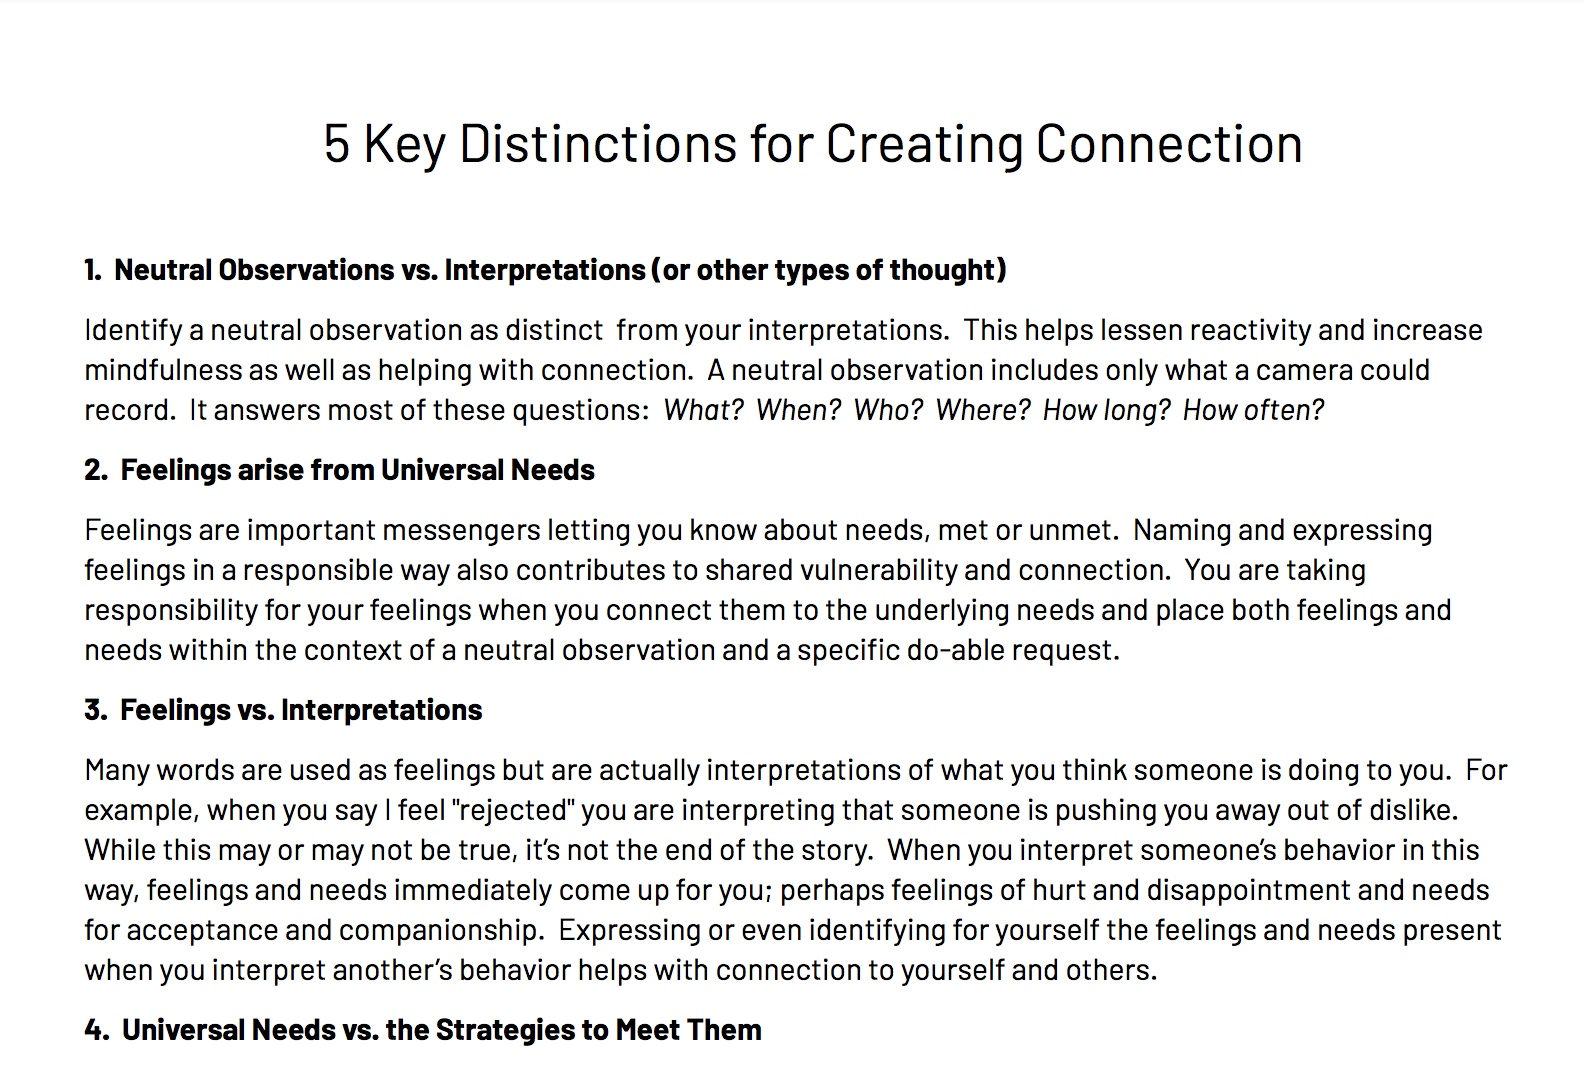 - 5 Key Distinctions for Creating Connection